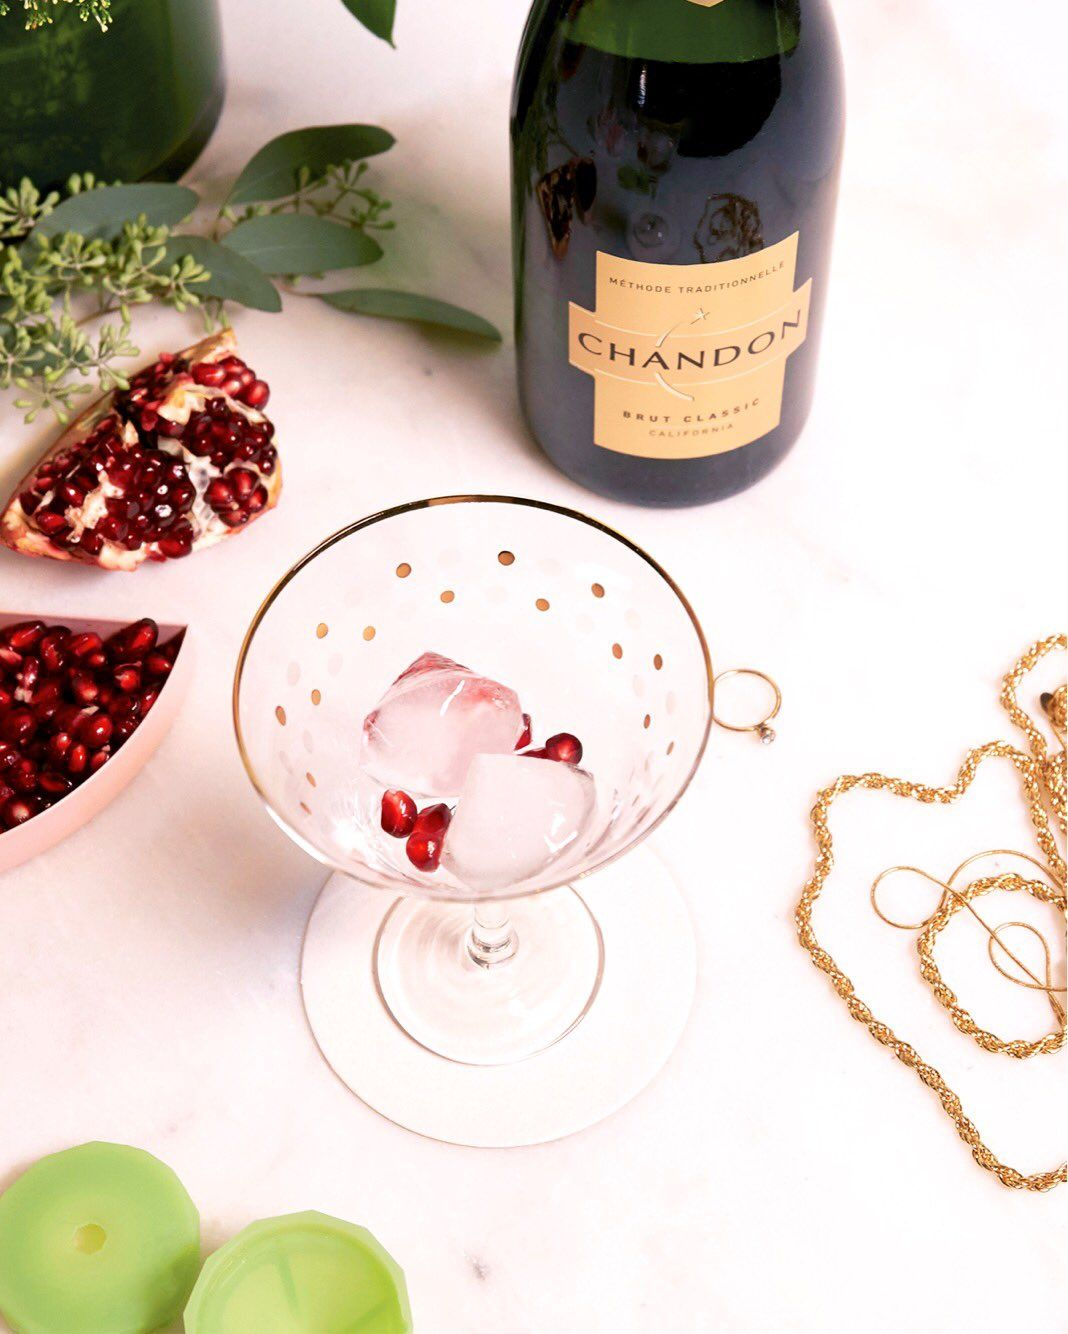 Dial up the drama with a Beverly Hills-inspired drink.  Top off your Brut with a dash of pomegranate seeds and diamond-shaped ice cubes for some ice cold bling.